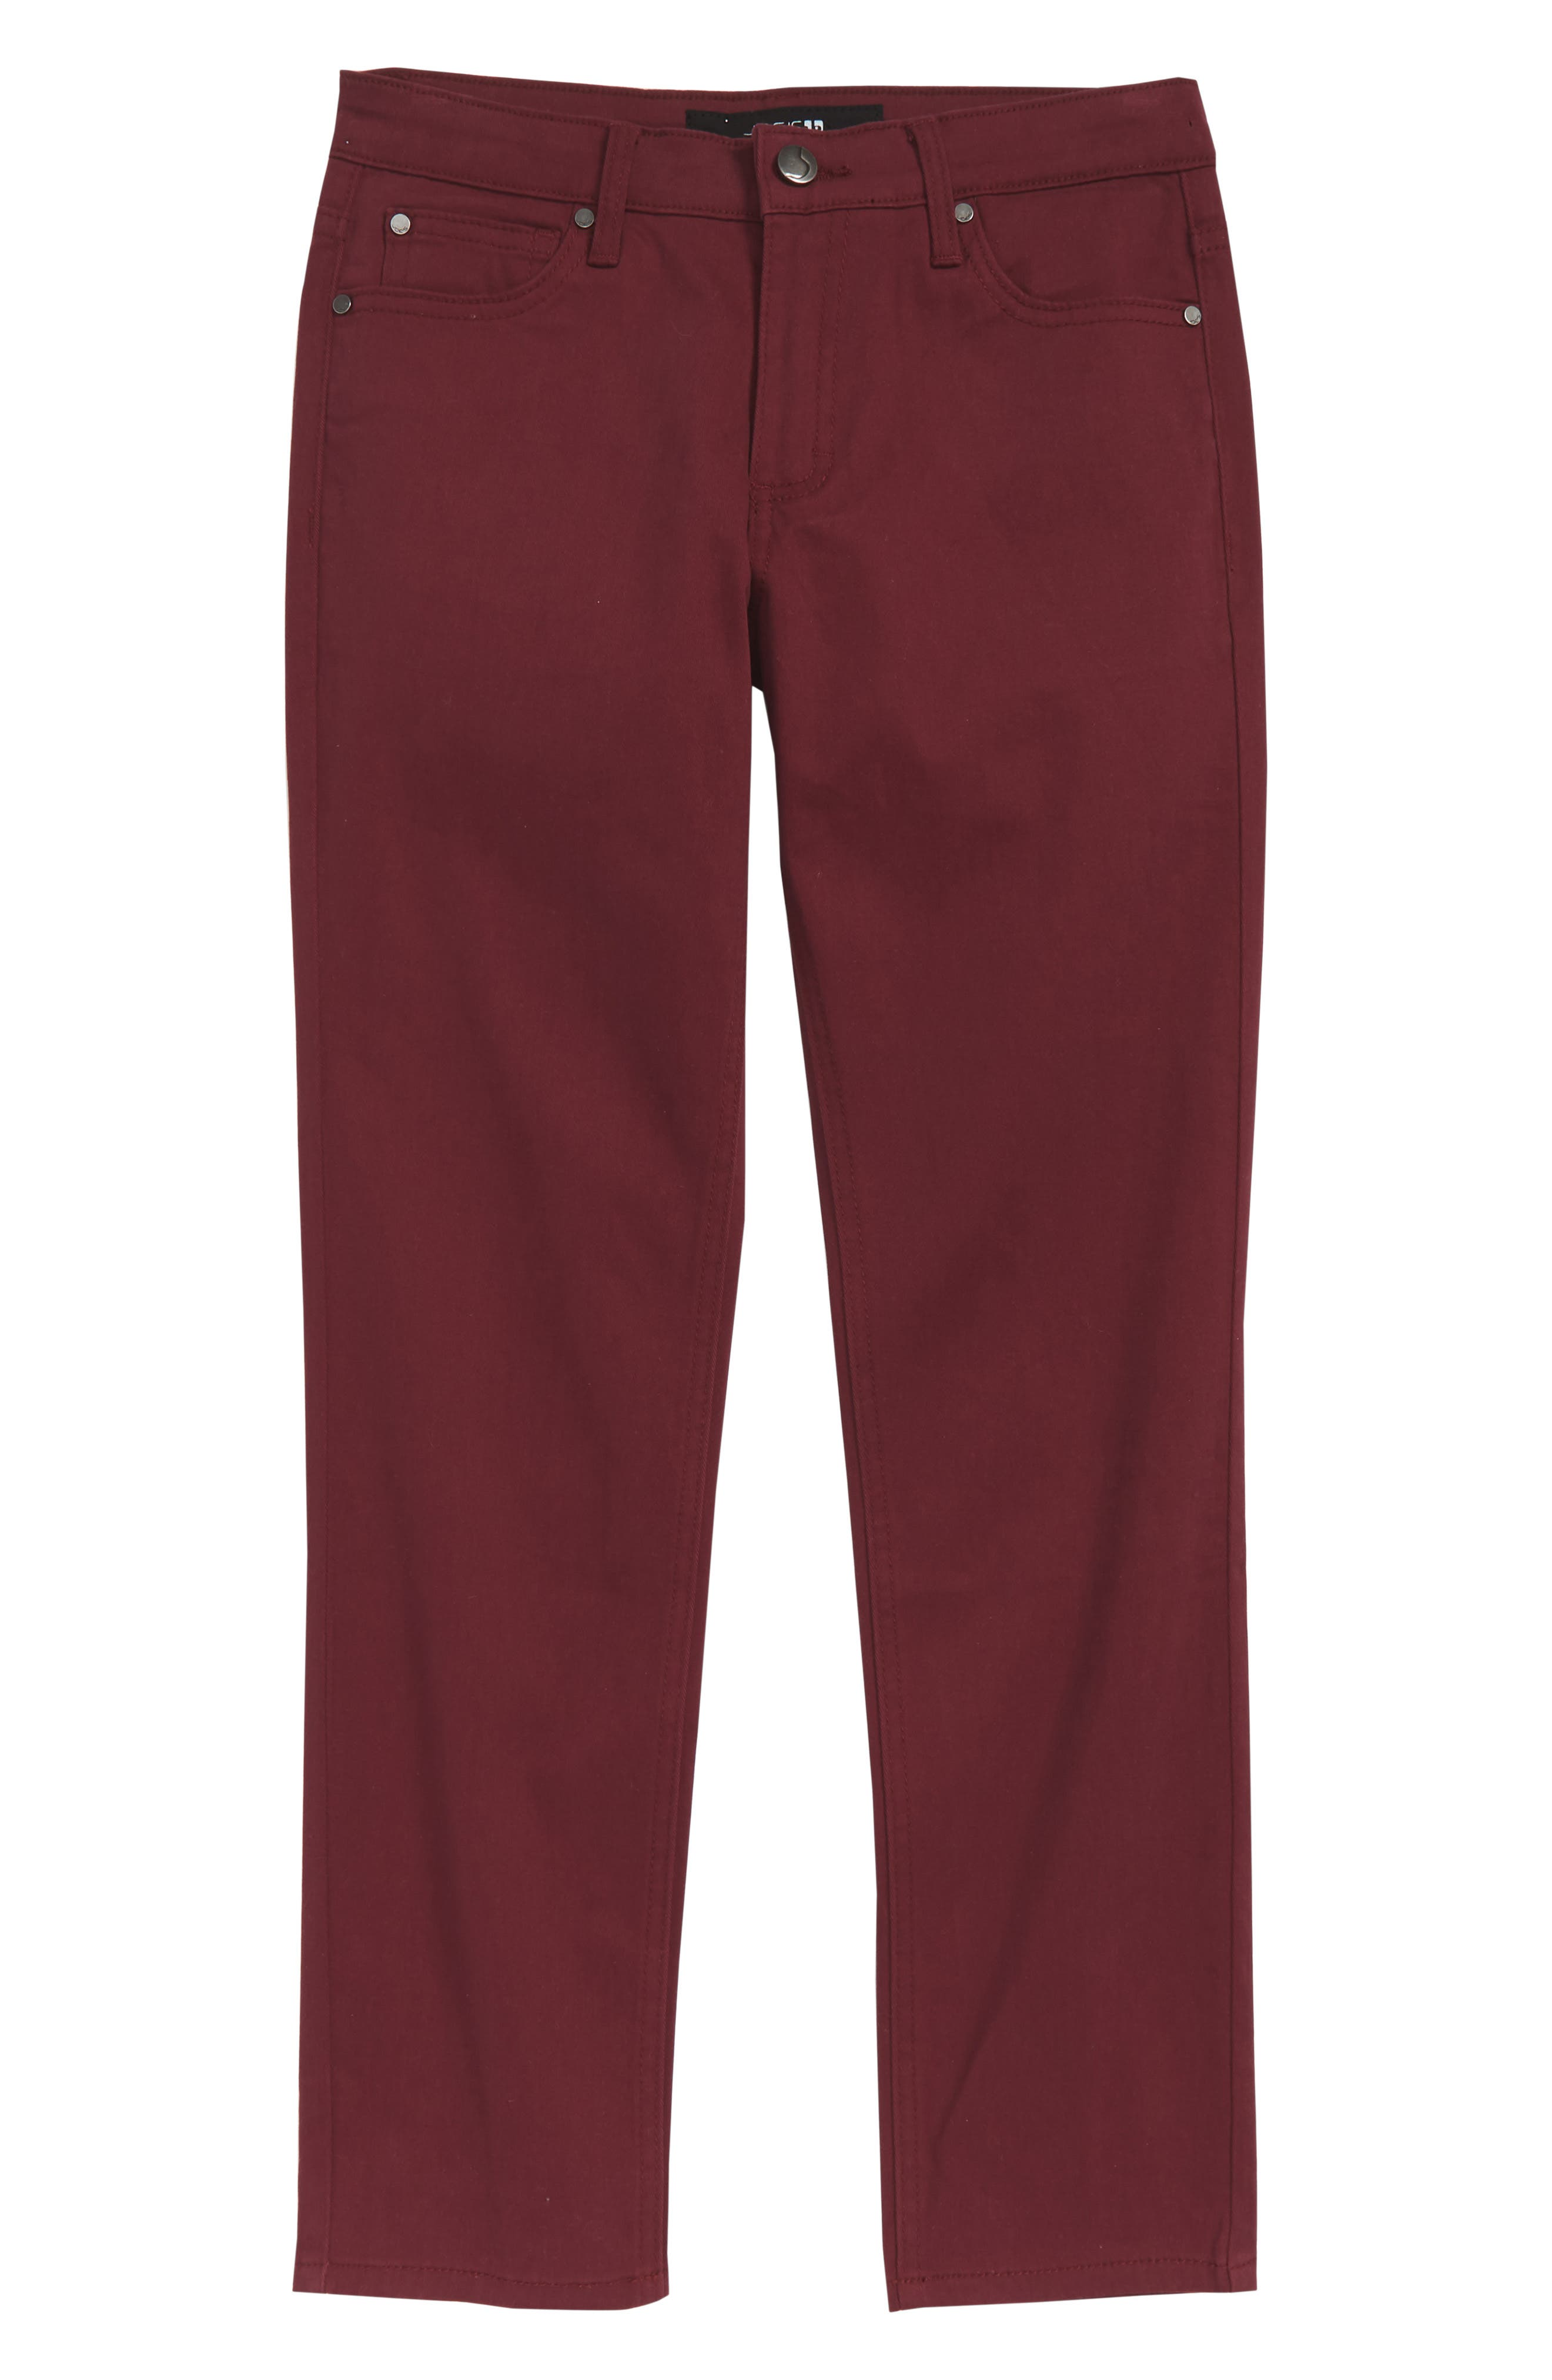 Brixton Straight Leg Stretch Twill Pants,                             Main thumbnail 1, color,                             930